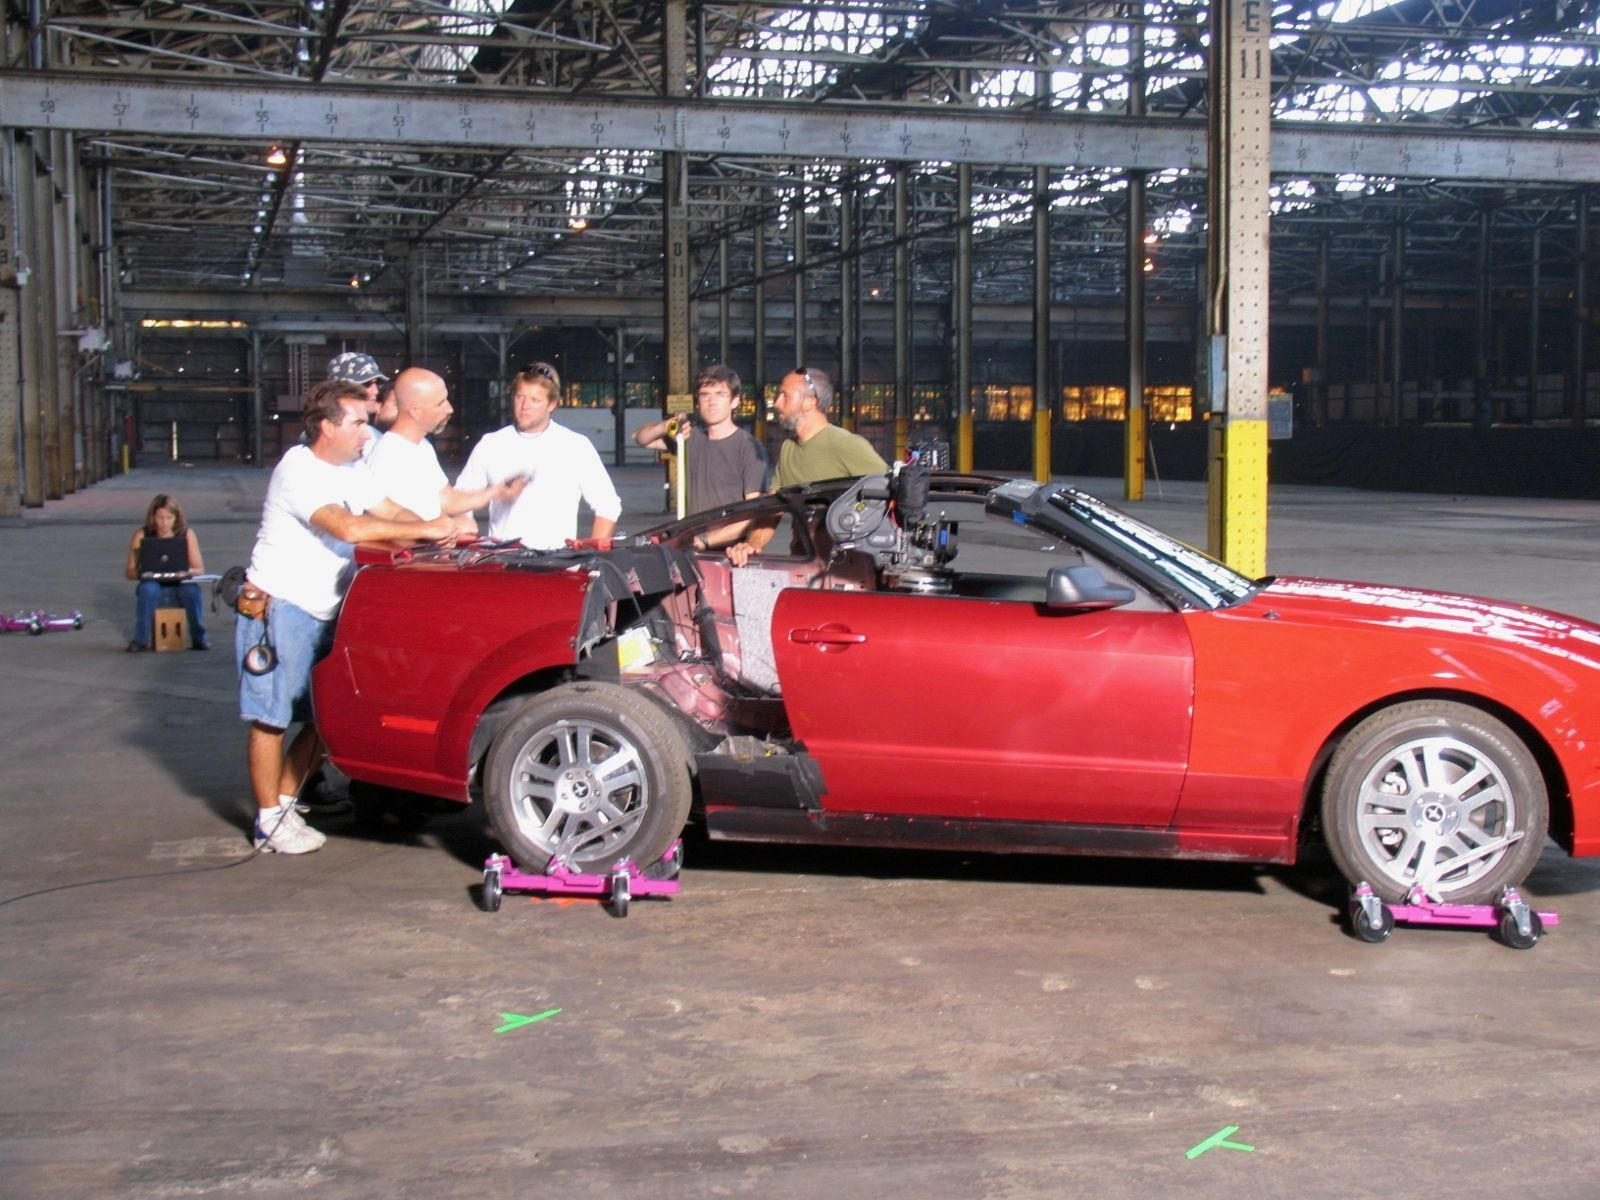 Setting Up A Camera Car For A Specialty Shoot Back In 2004 This Cutaway Was A Sn197 Mustang Used For The Huge Ford Ad Campaign To Mustang Ford Ad Campaign